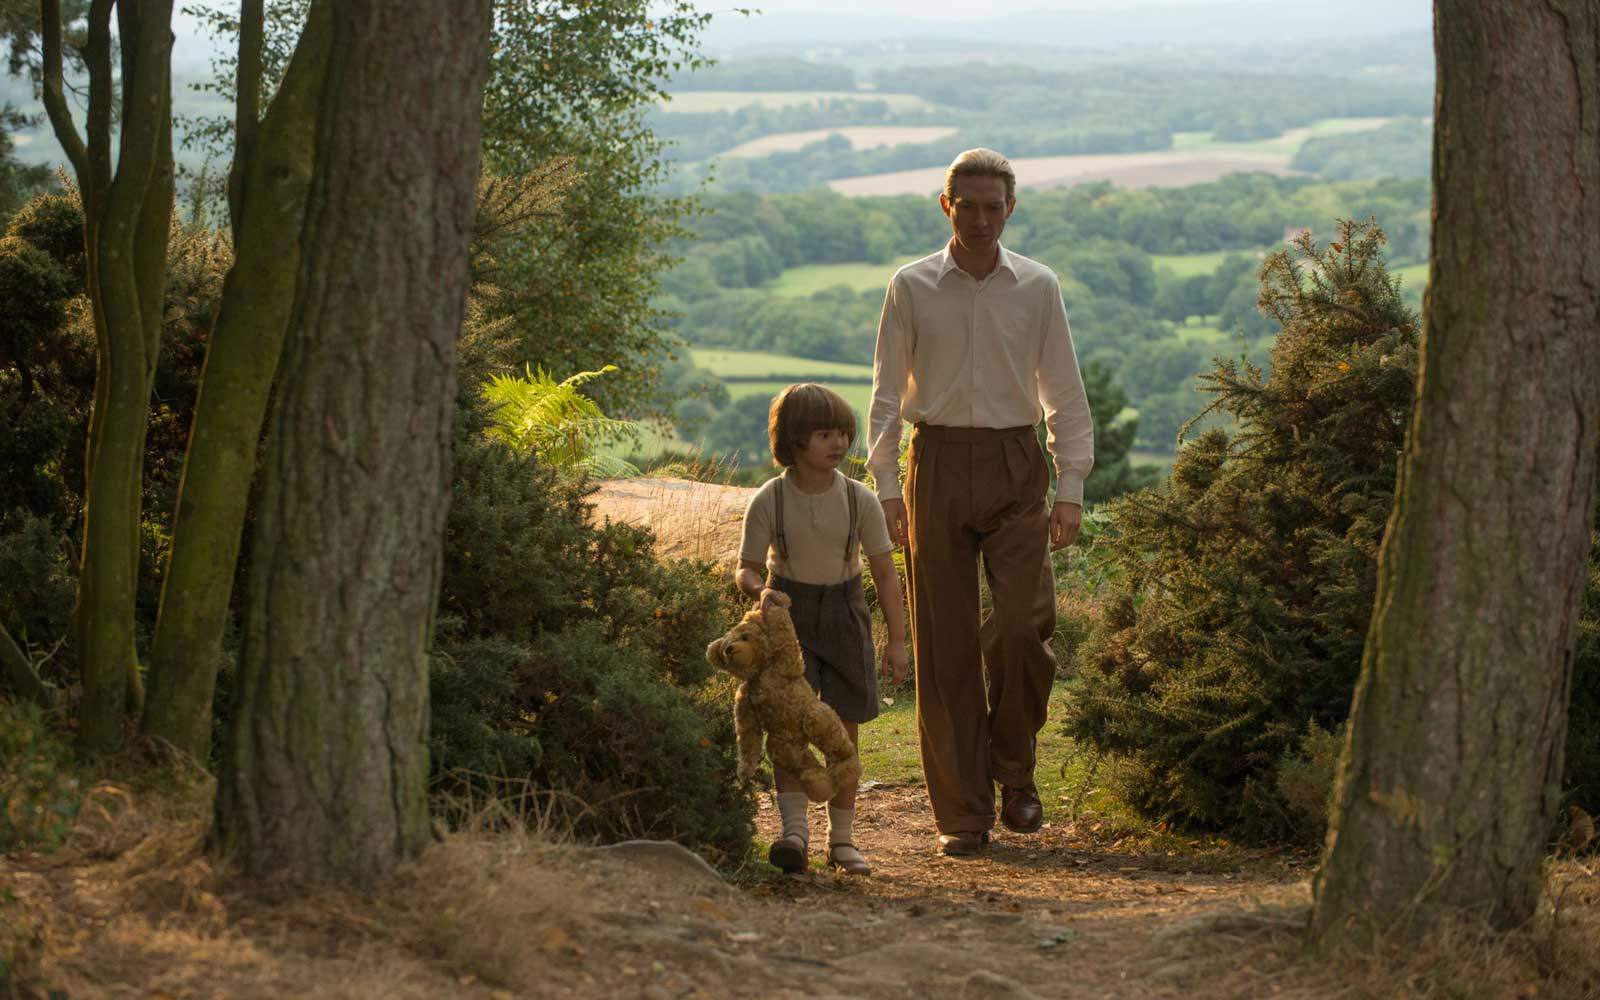 'Winnie the Pooh' Fans Can Visit the Real-life Hundred Acre Wood